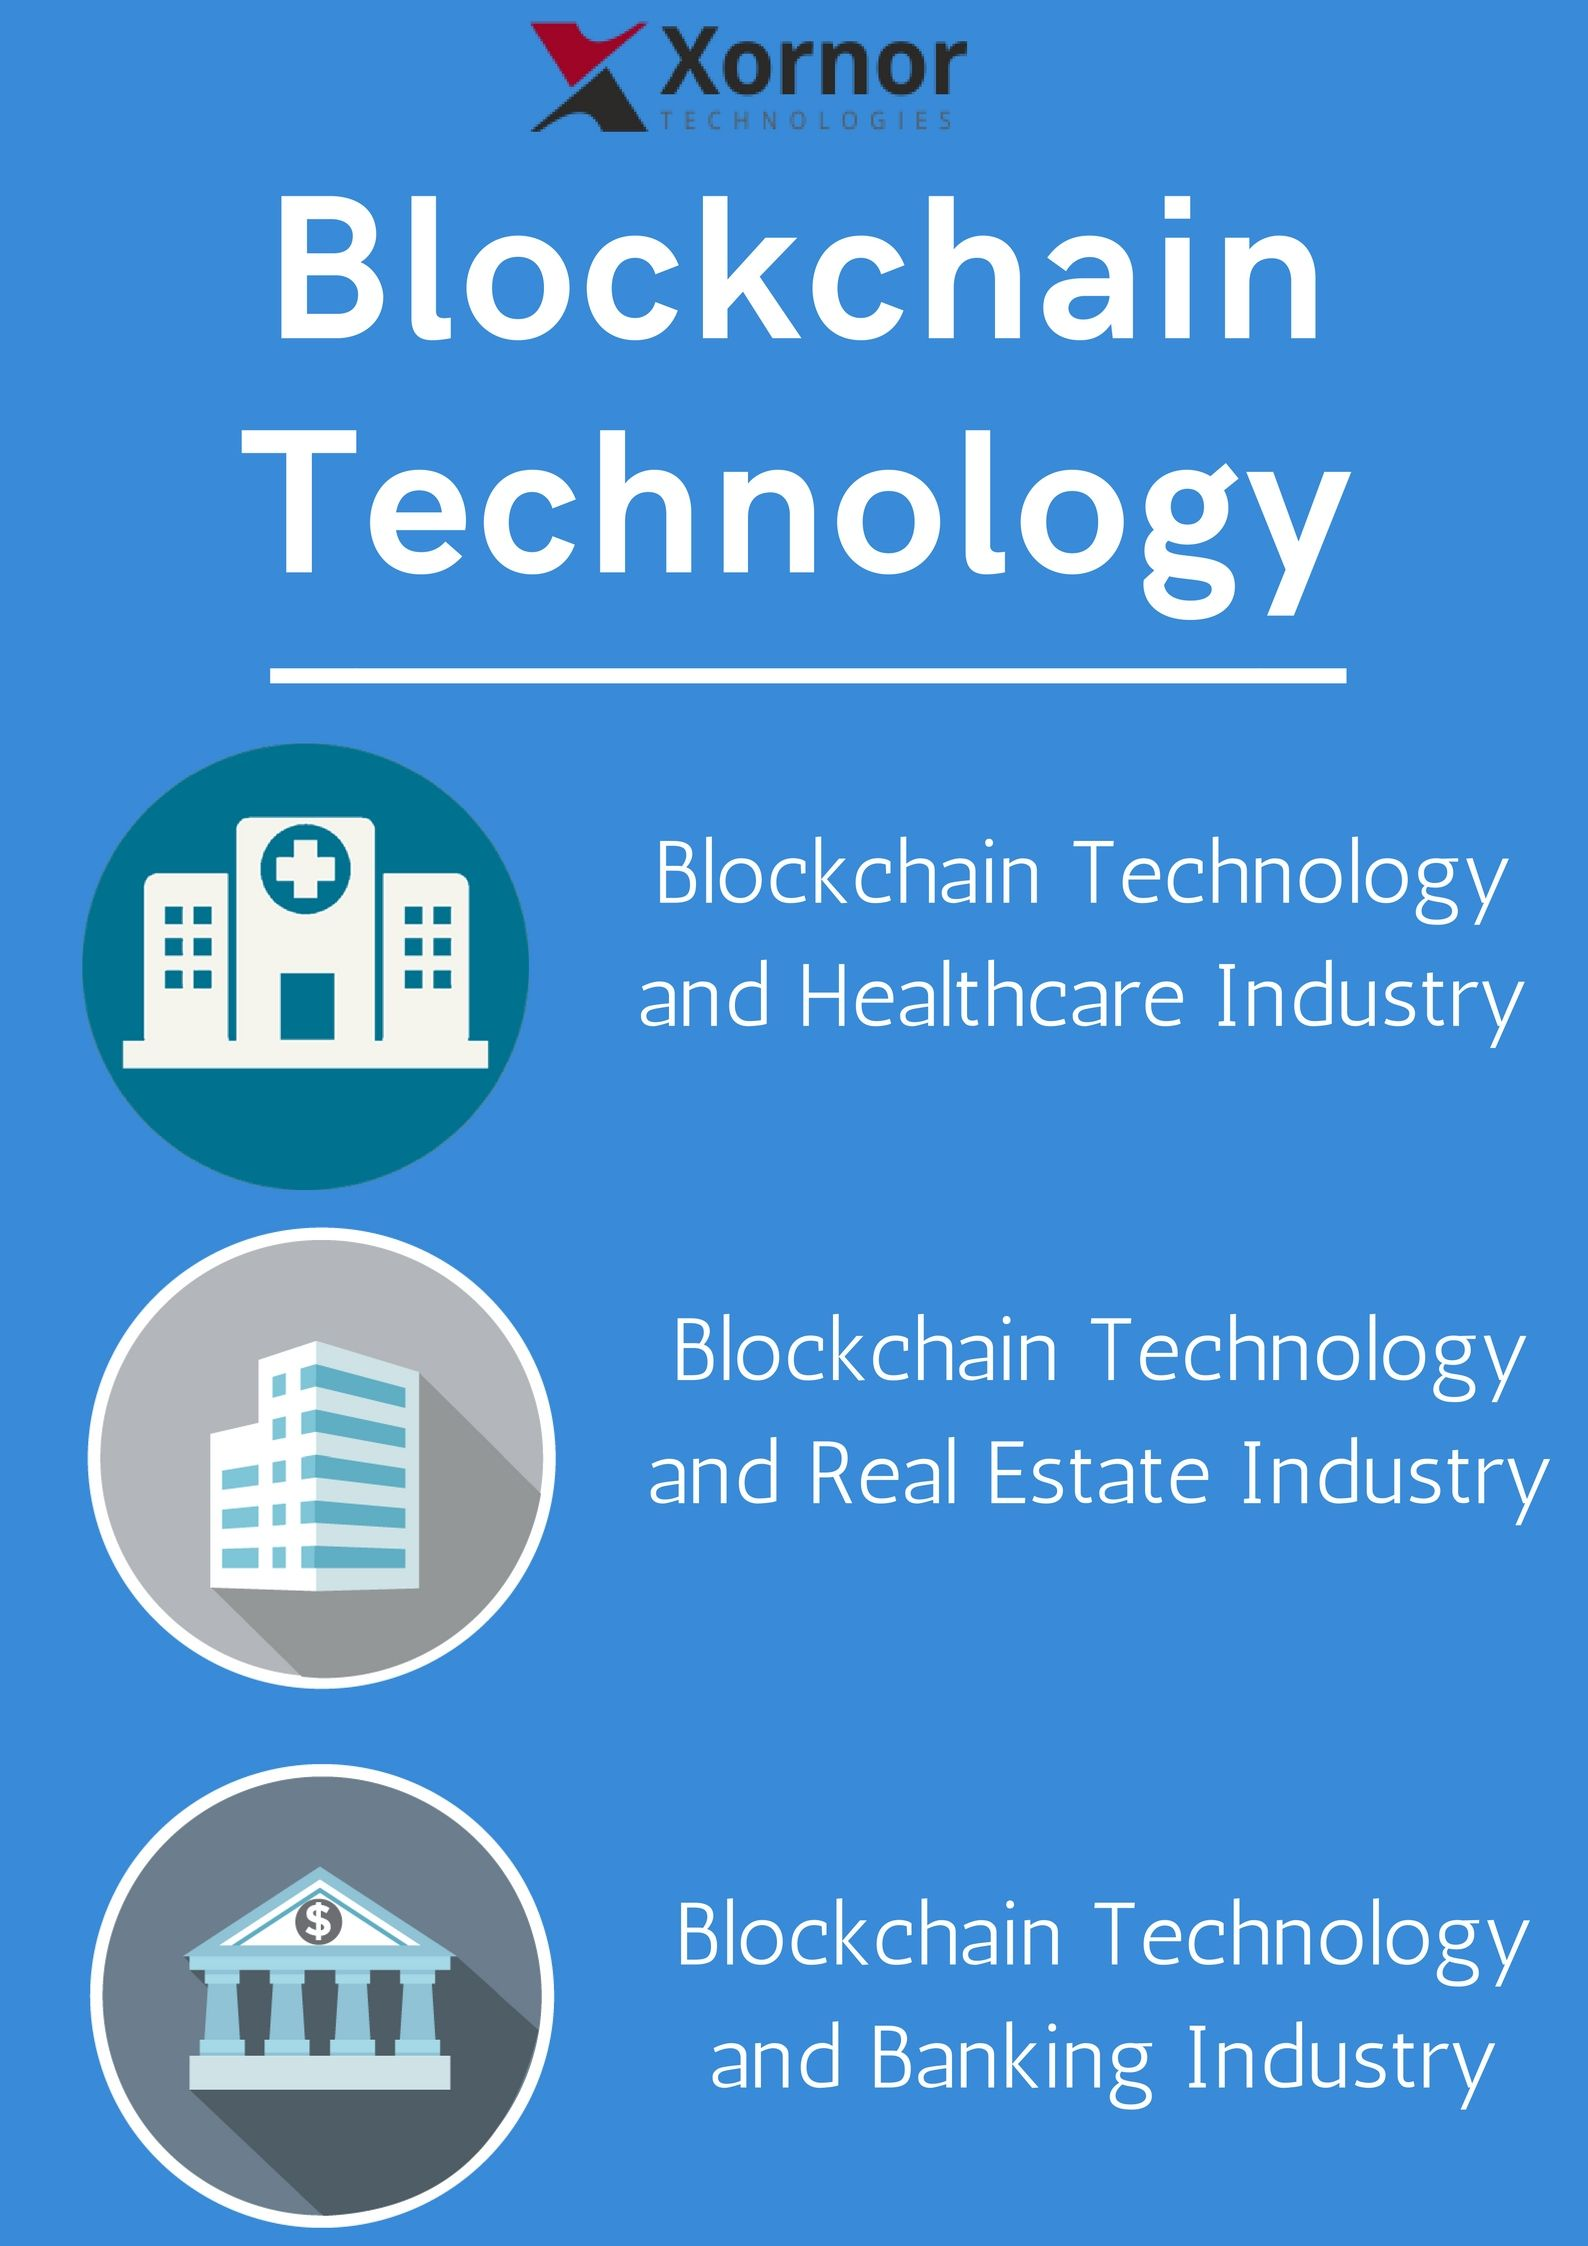 Blockchaintechnology Blockchain Cryptocurrency Bitcoin Healthcare Realestate Banking Technology Blockchain Technology Blockchain Technology